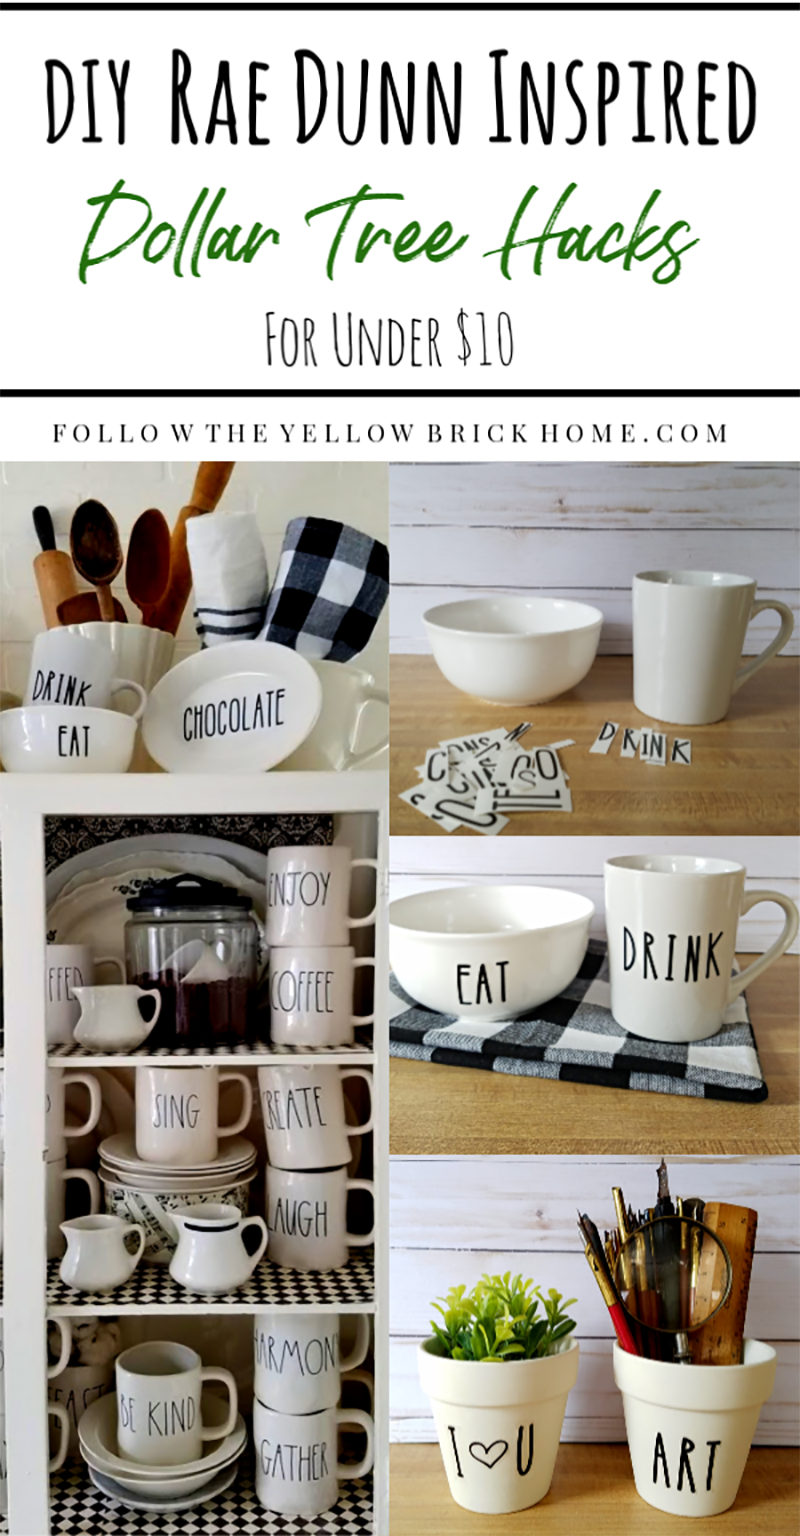 Time to check out a collection of Quick and Easy Modern Farmhouse Dollar Store Hacks that will add the right amount of style and panache to your Farmhouse